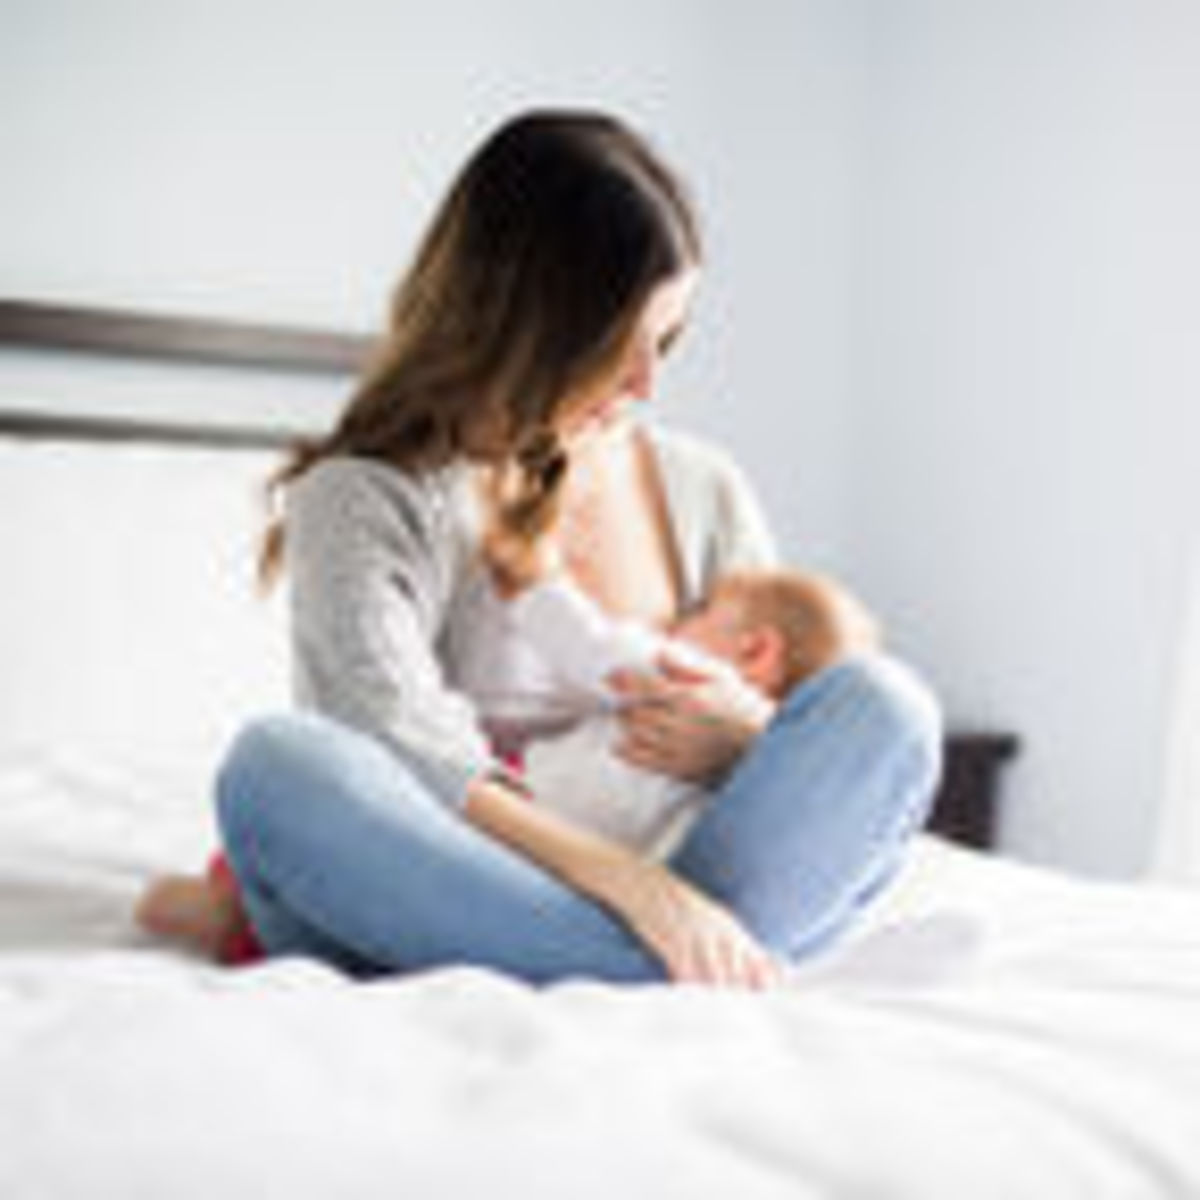 How Long Should Mothers Breastfeed? | Psychology Today